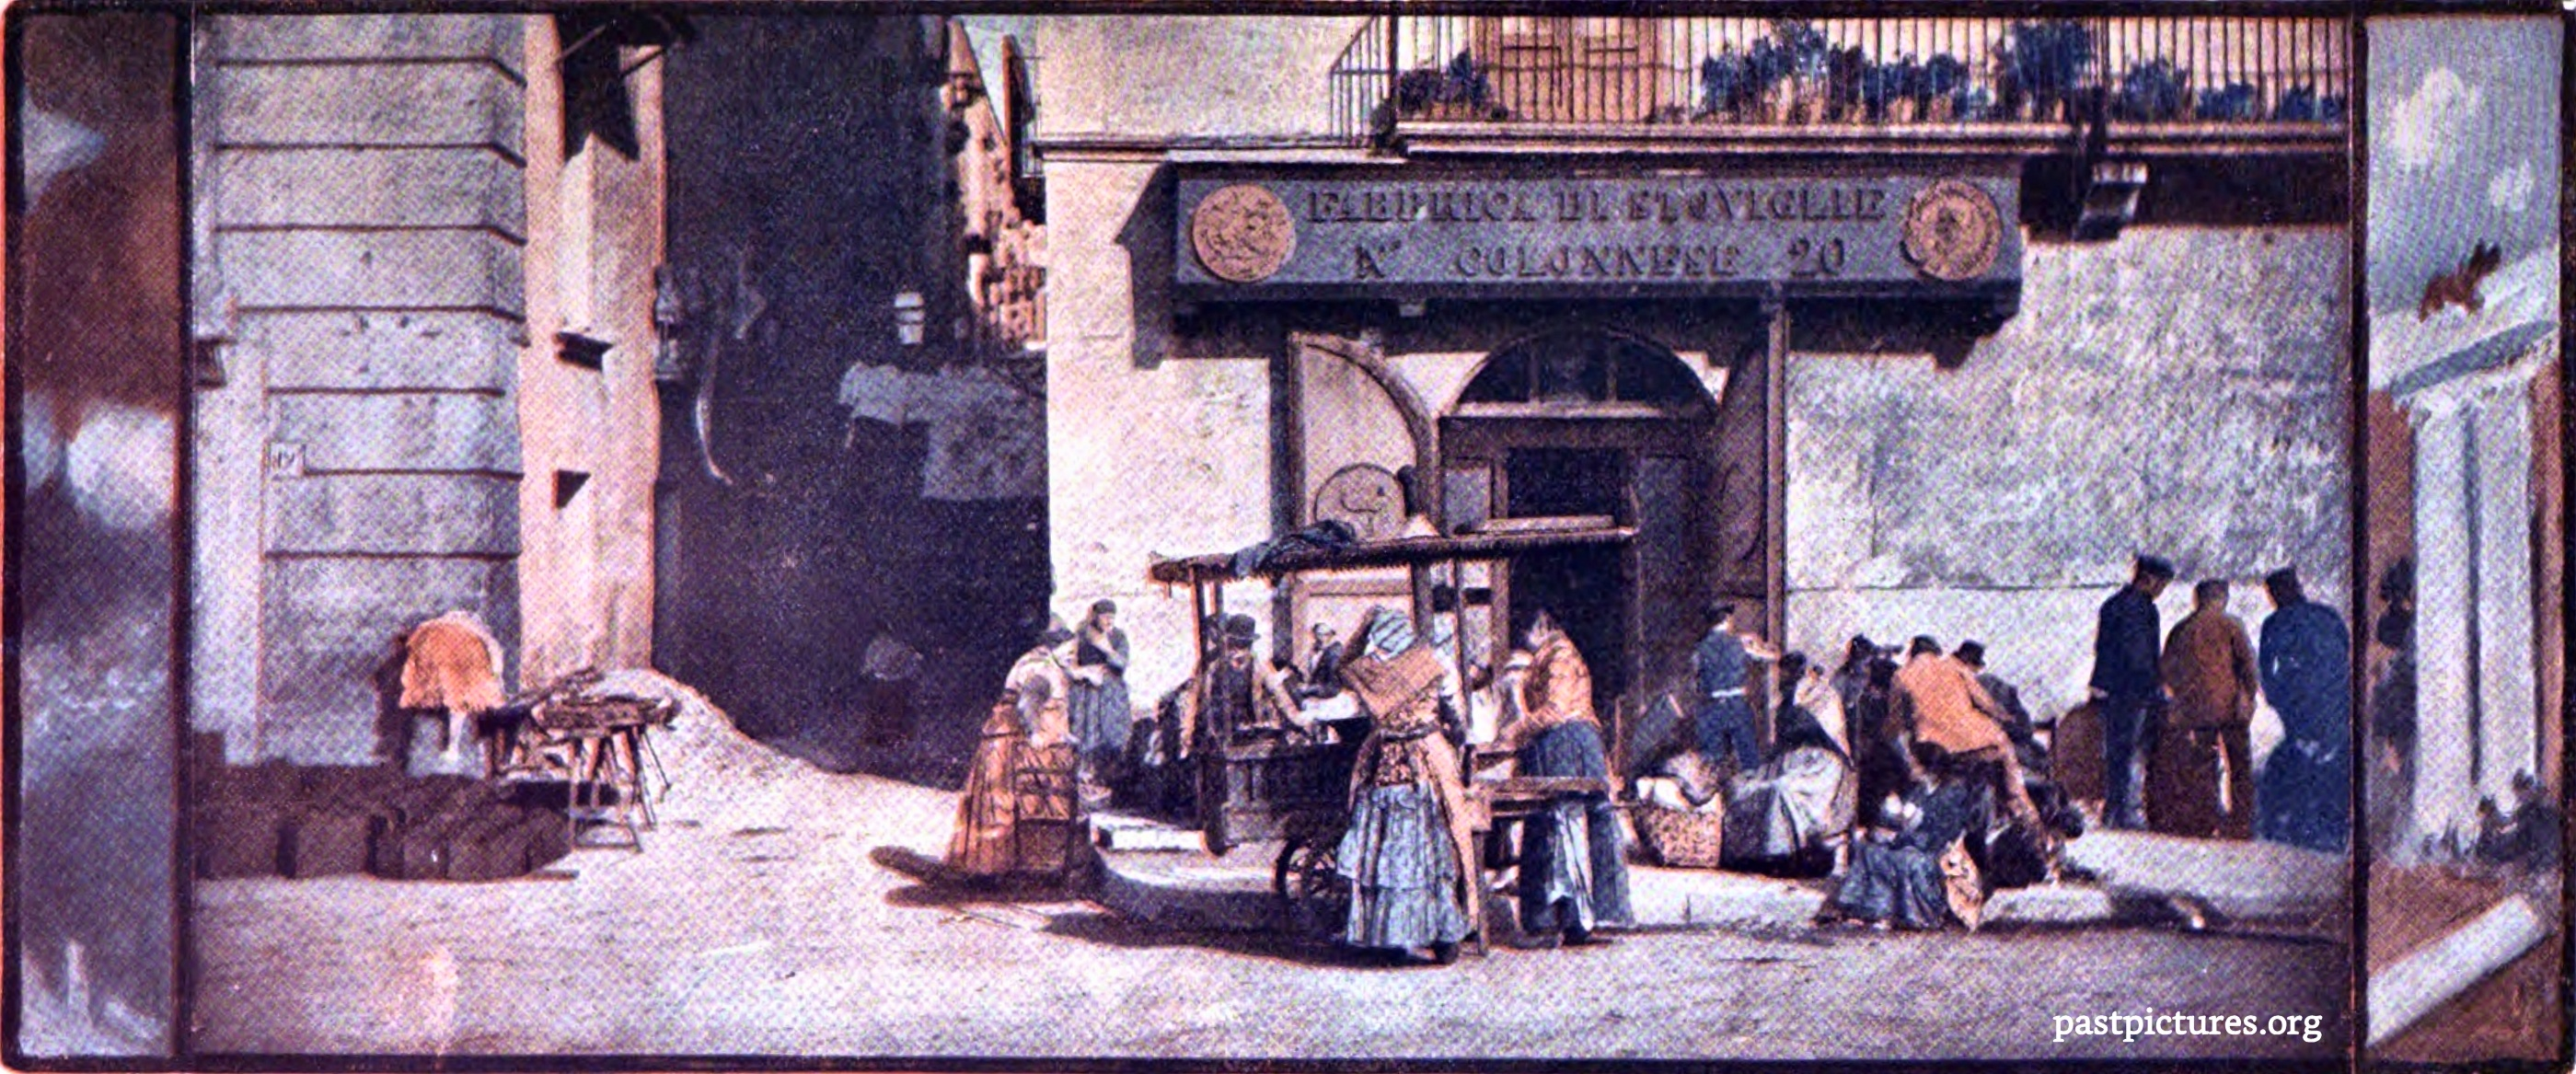 A Street Scene in Naples (Italy) about 1905